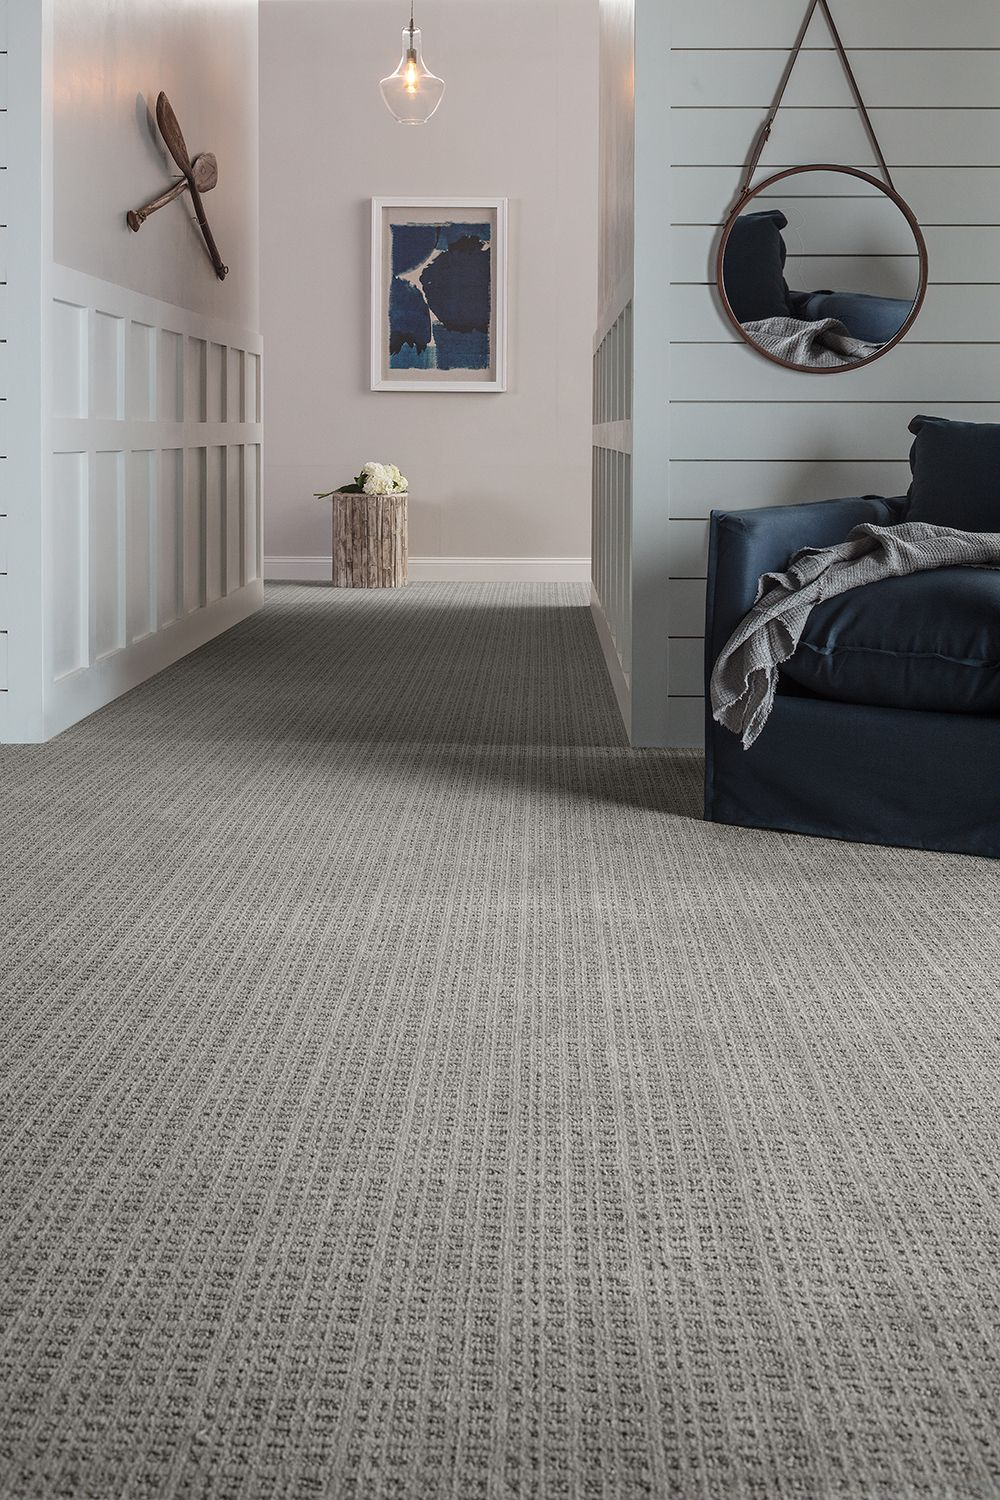 Awesome News Good Informations Starts From Awesome News Carpet Tiles Carpet Tiles Bedroom Floor Carpet Tiles